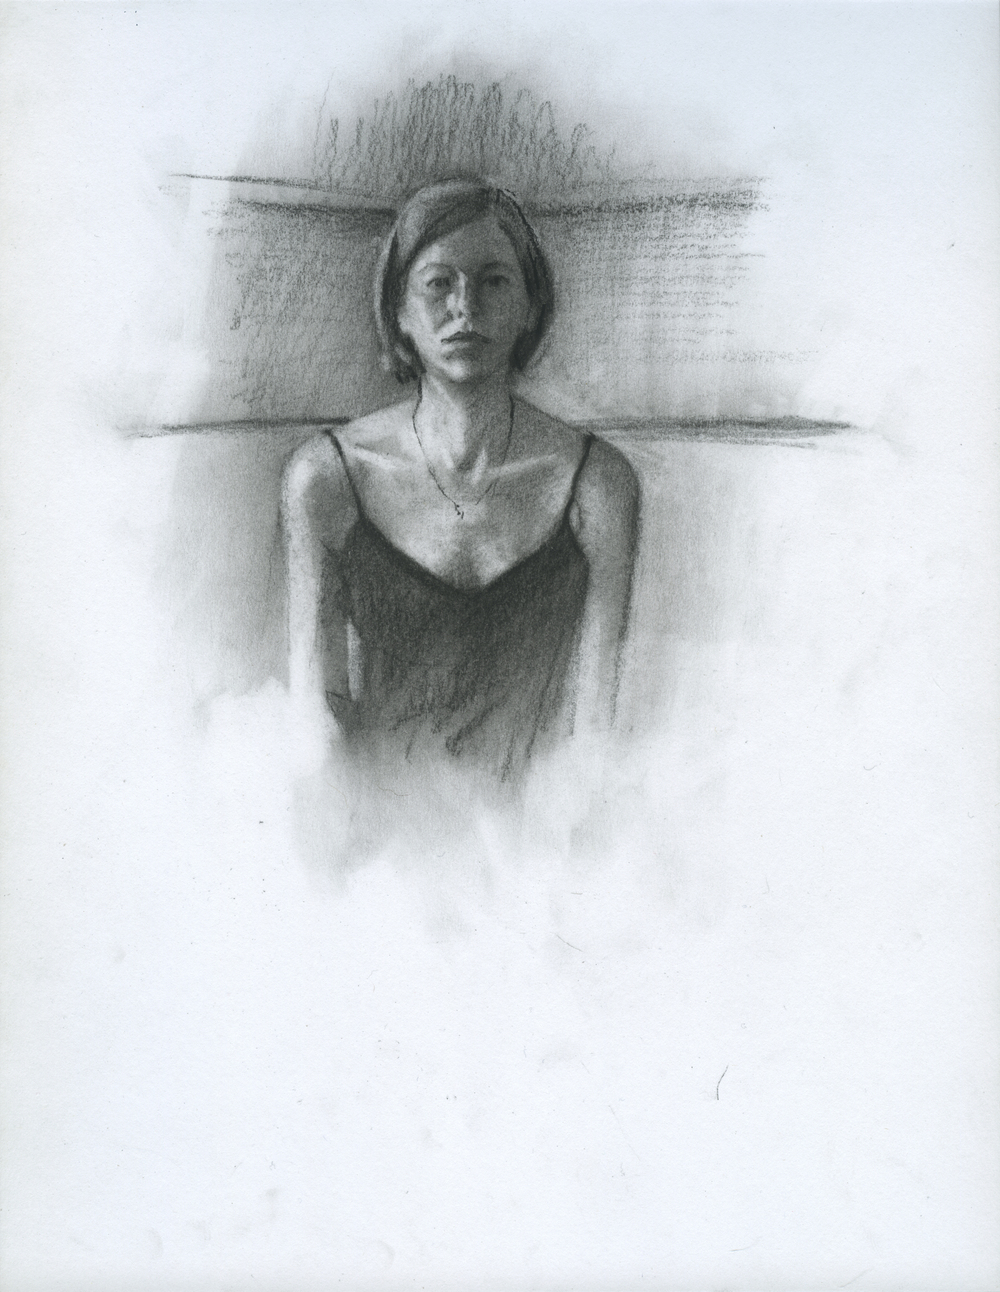 "Words Are Chosen Carefully, charcoal on paper, 11"" x 8.5"", 2014"